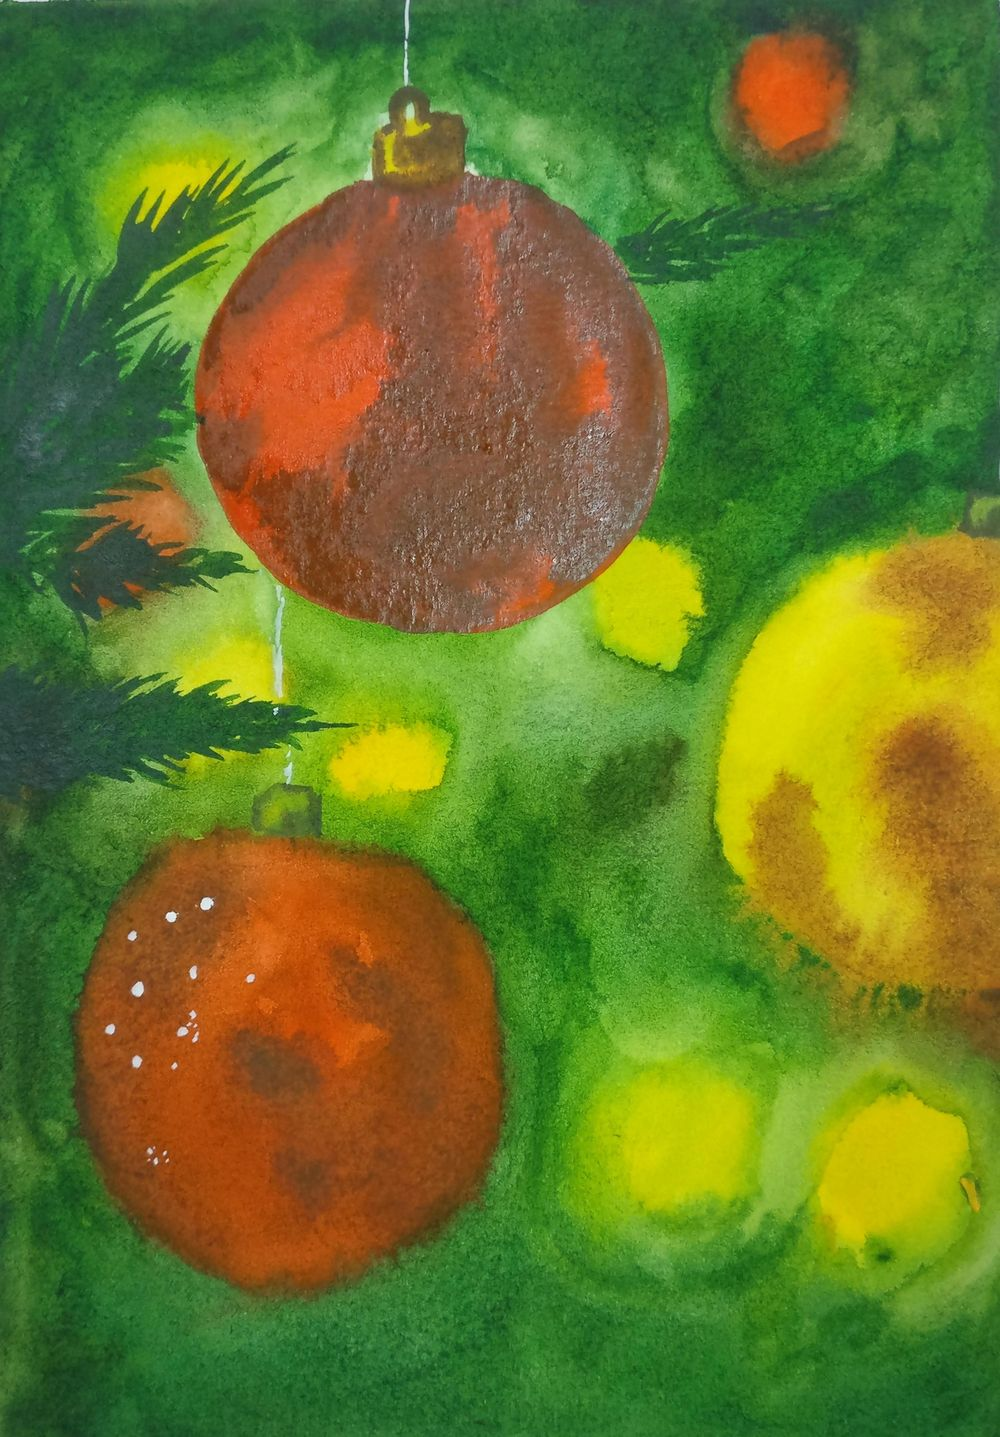 Christmas with watercolors - image 3 - student project